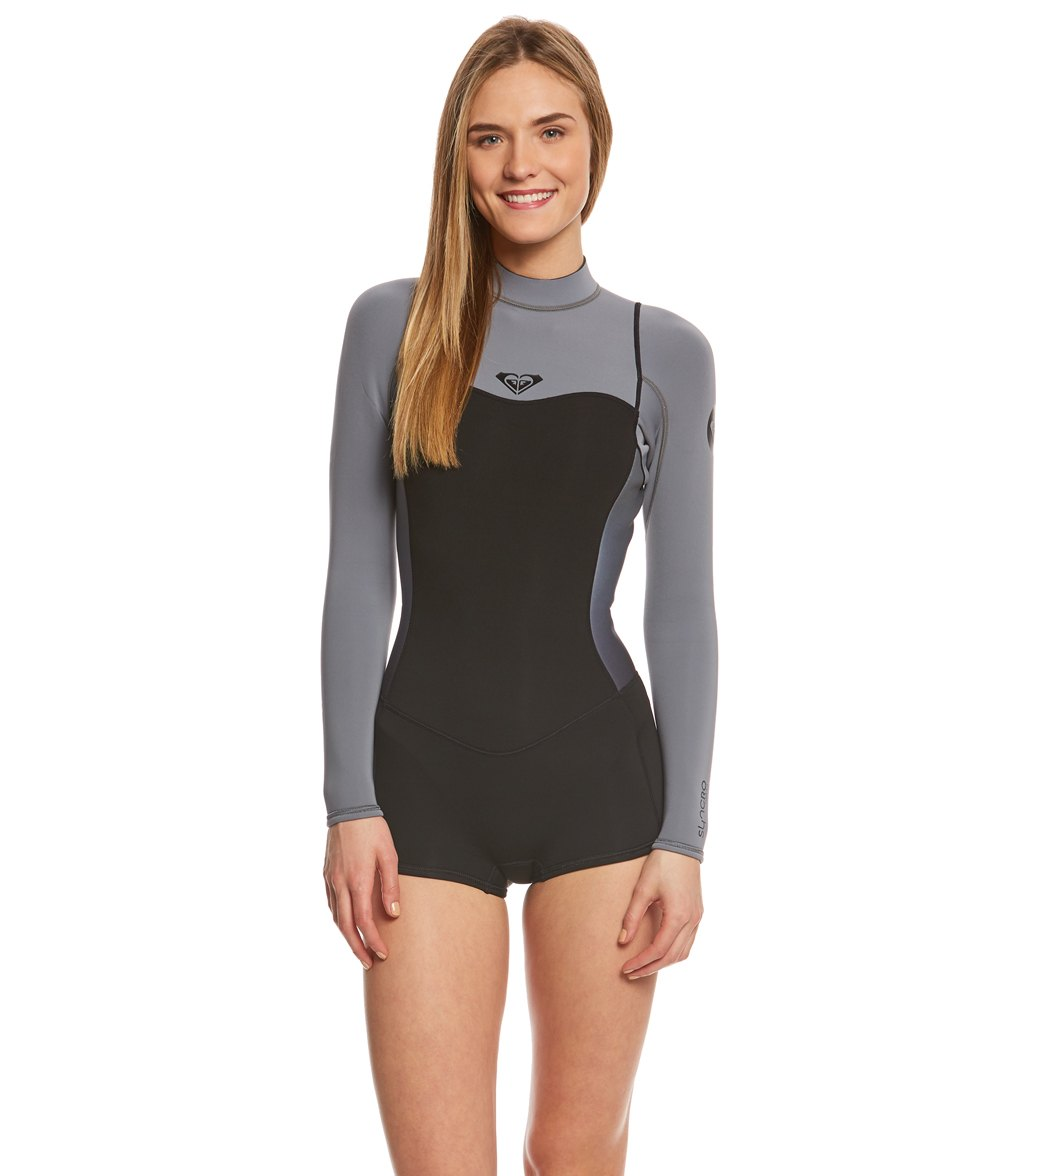 a7155bf0e1 Roxy Women s 2 2mm Syncro Back Zip L S Bootie Spring Suit Wetsuit ...